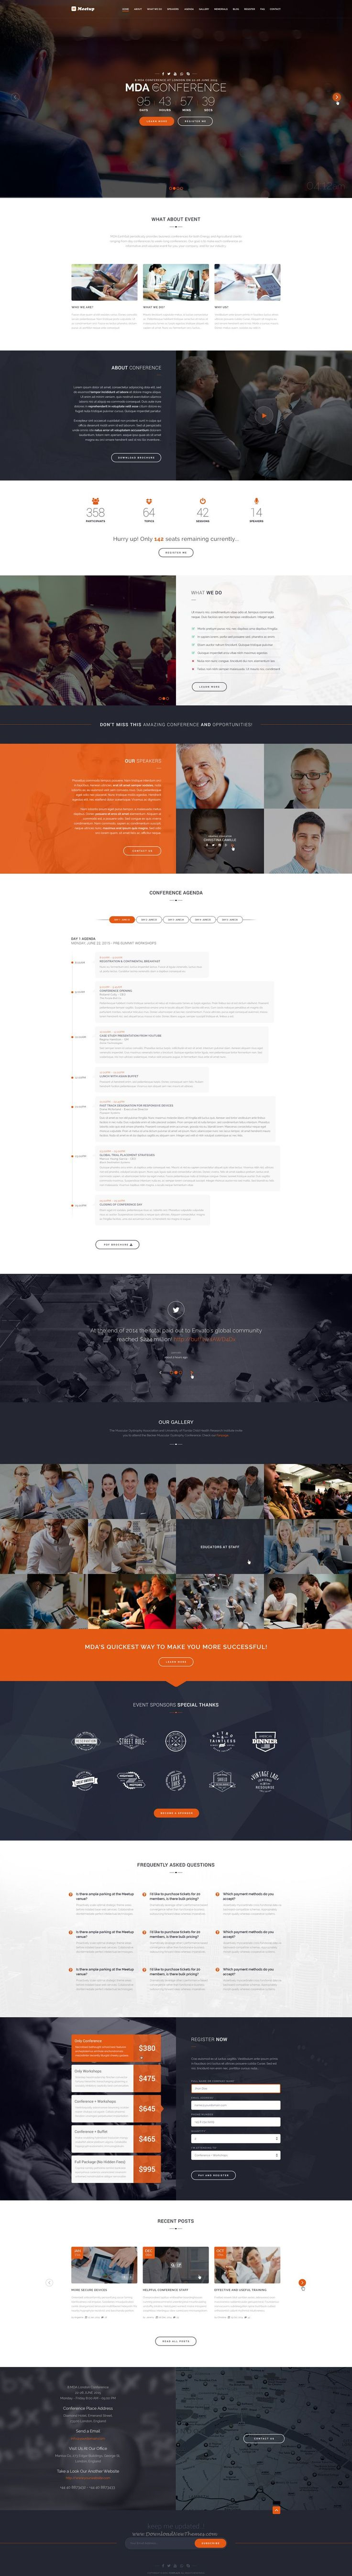 Meetup is a simple and easy-to-use WordPress theme which is created for business #websites and #conference purposes.  There are lots of featured sections for Speakers, Event Schedule, FAQ's, Registration Form and a location map. With many cutting-edge features.